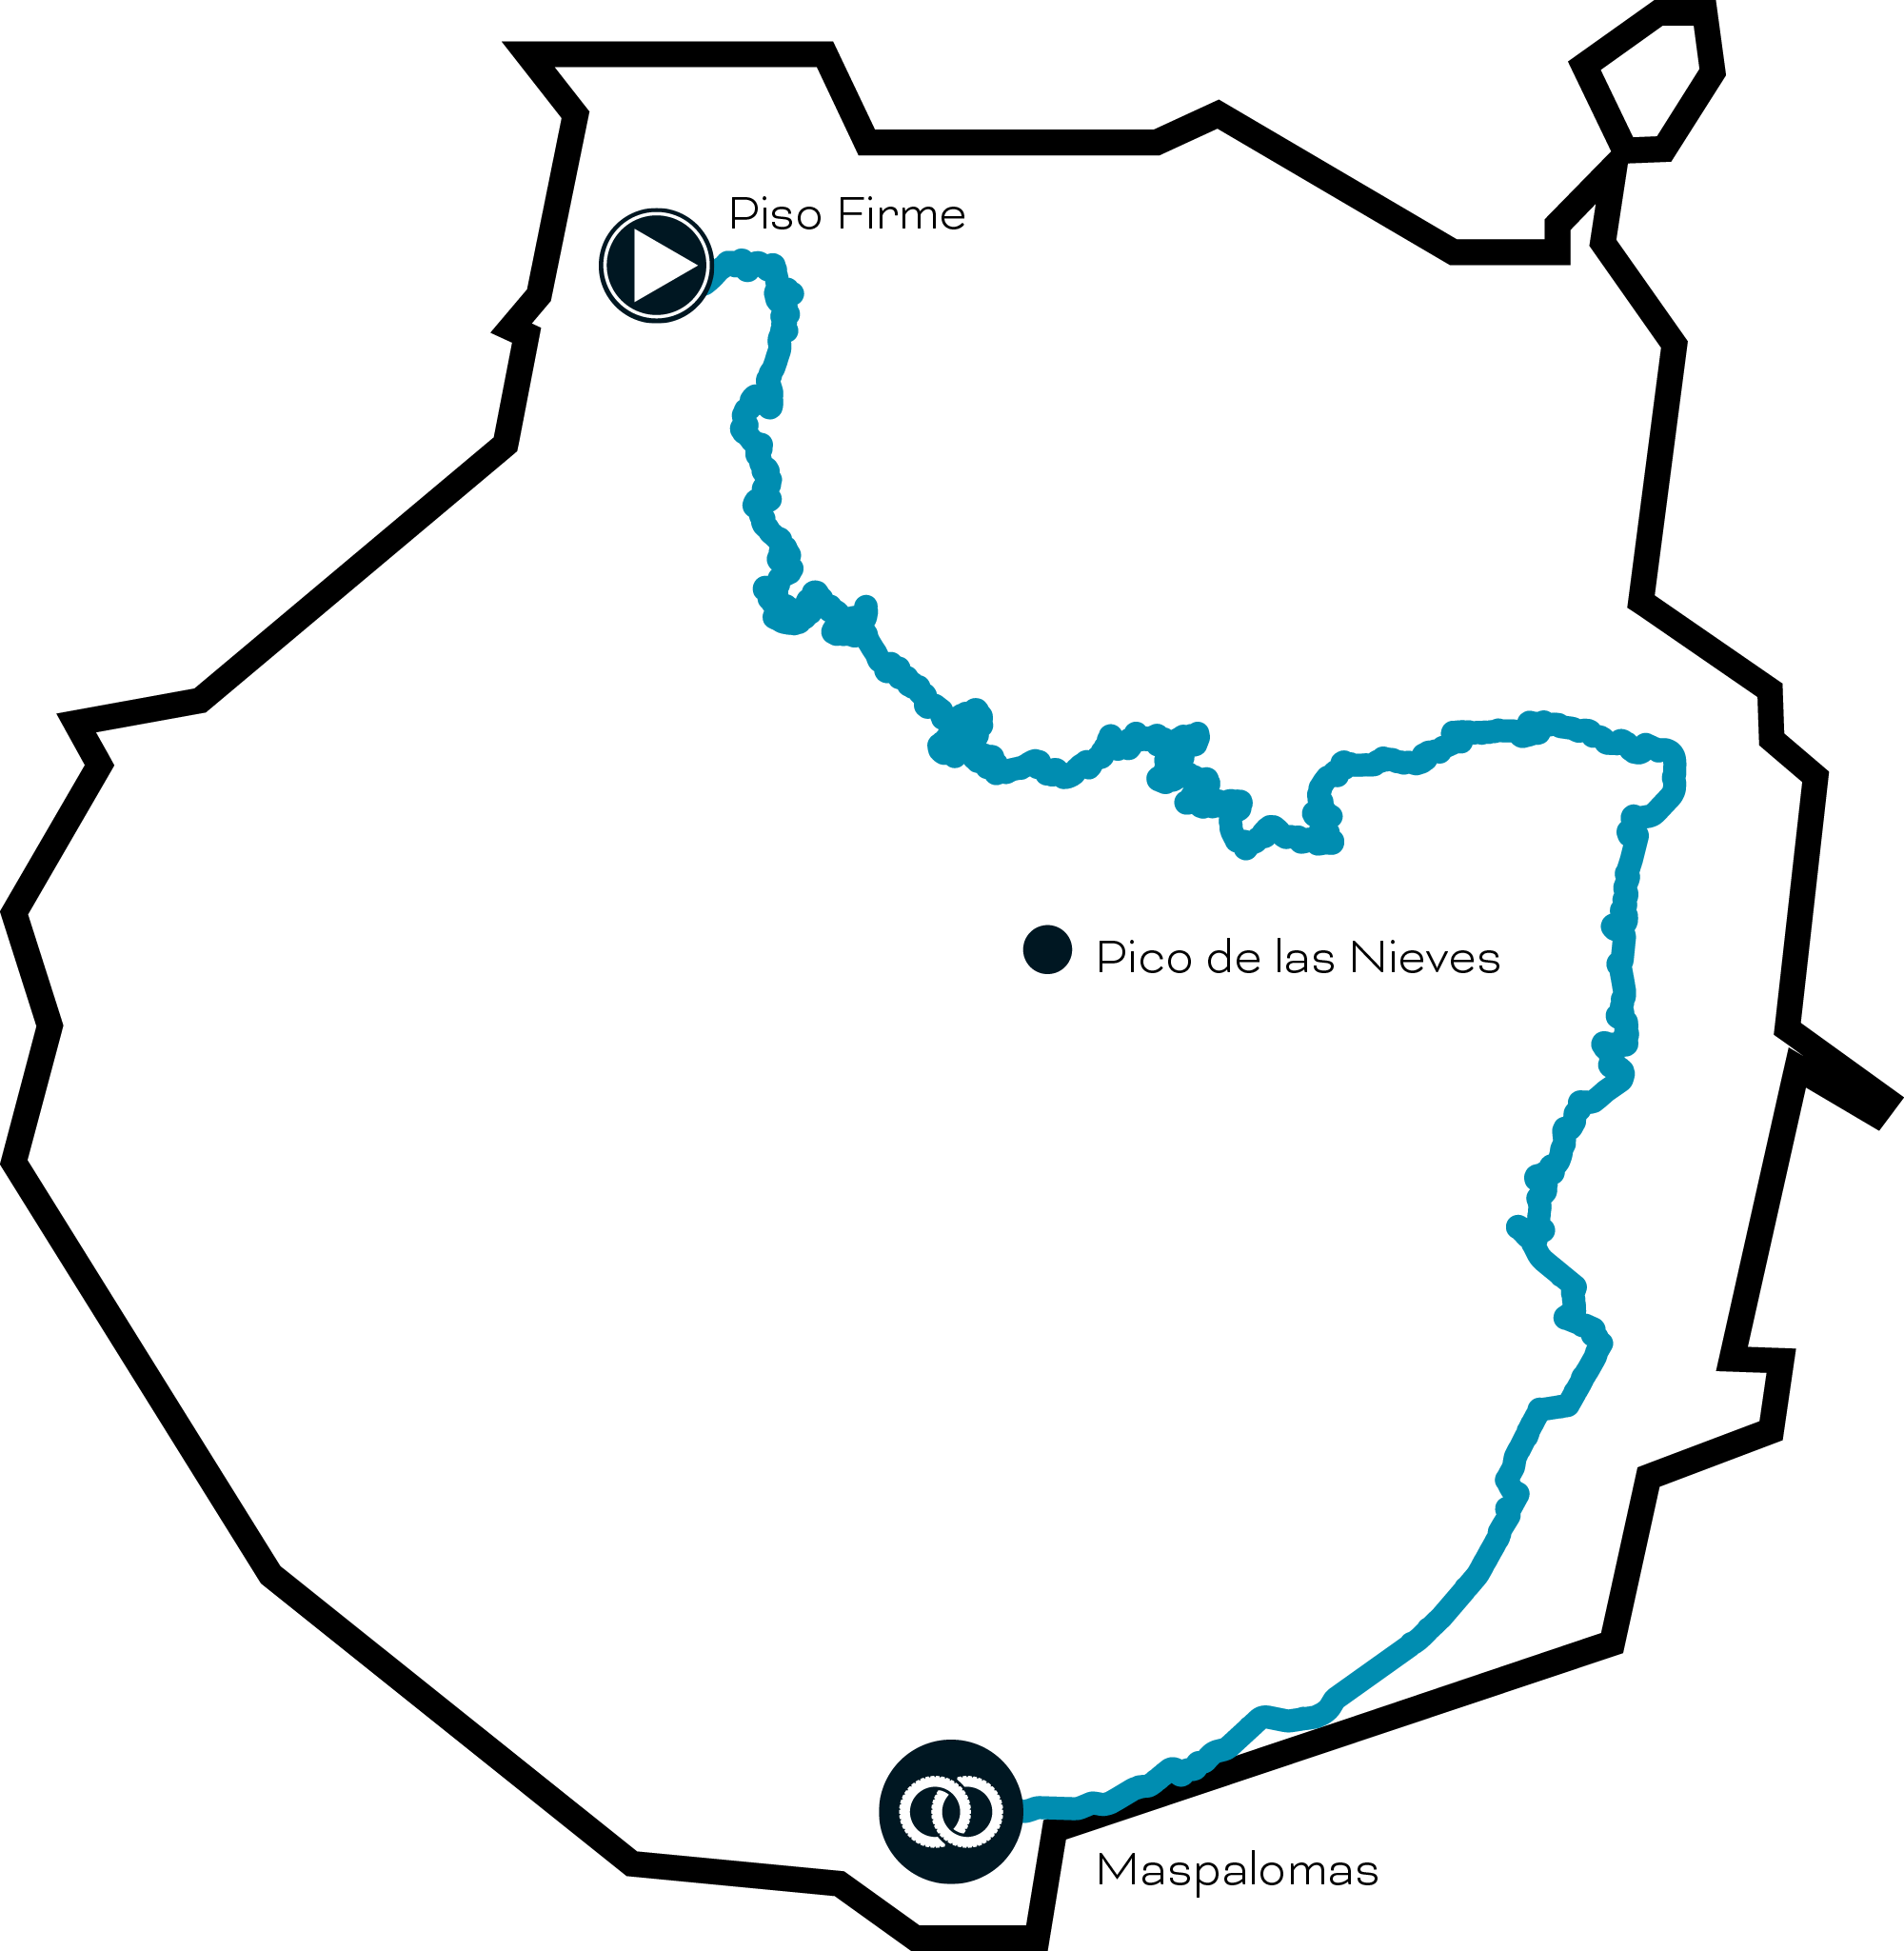 route map - black mountain